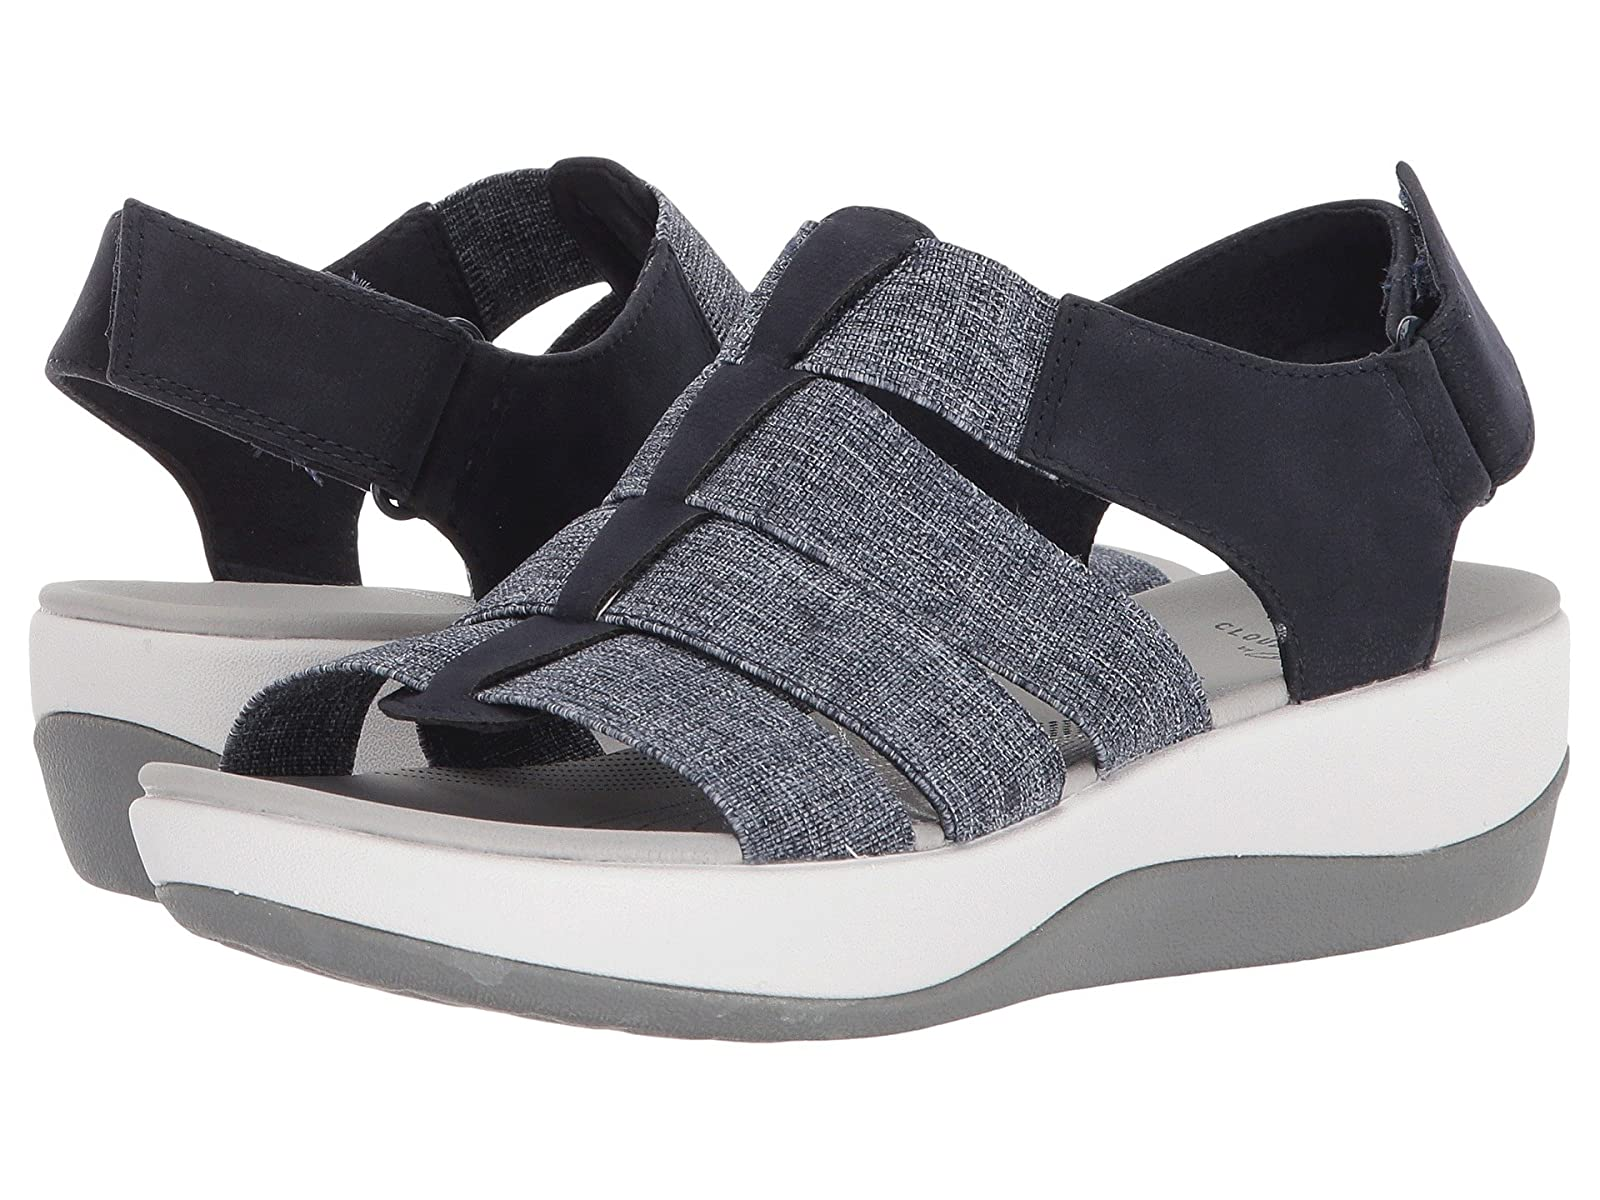 Clarks Arla ShaylieAtmospheric grades have affordable shoes